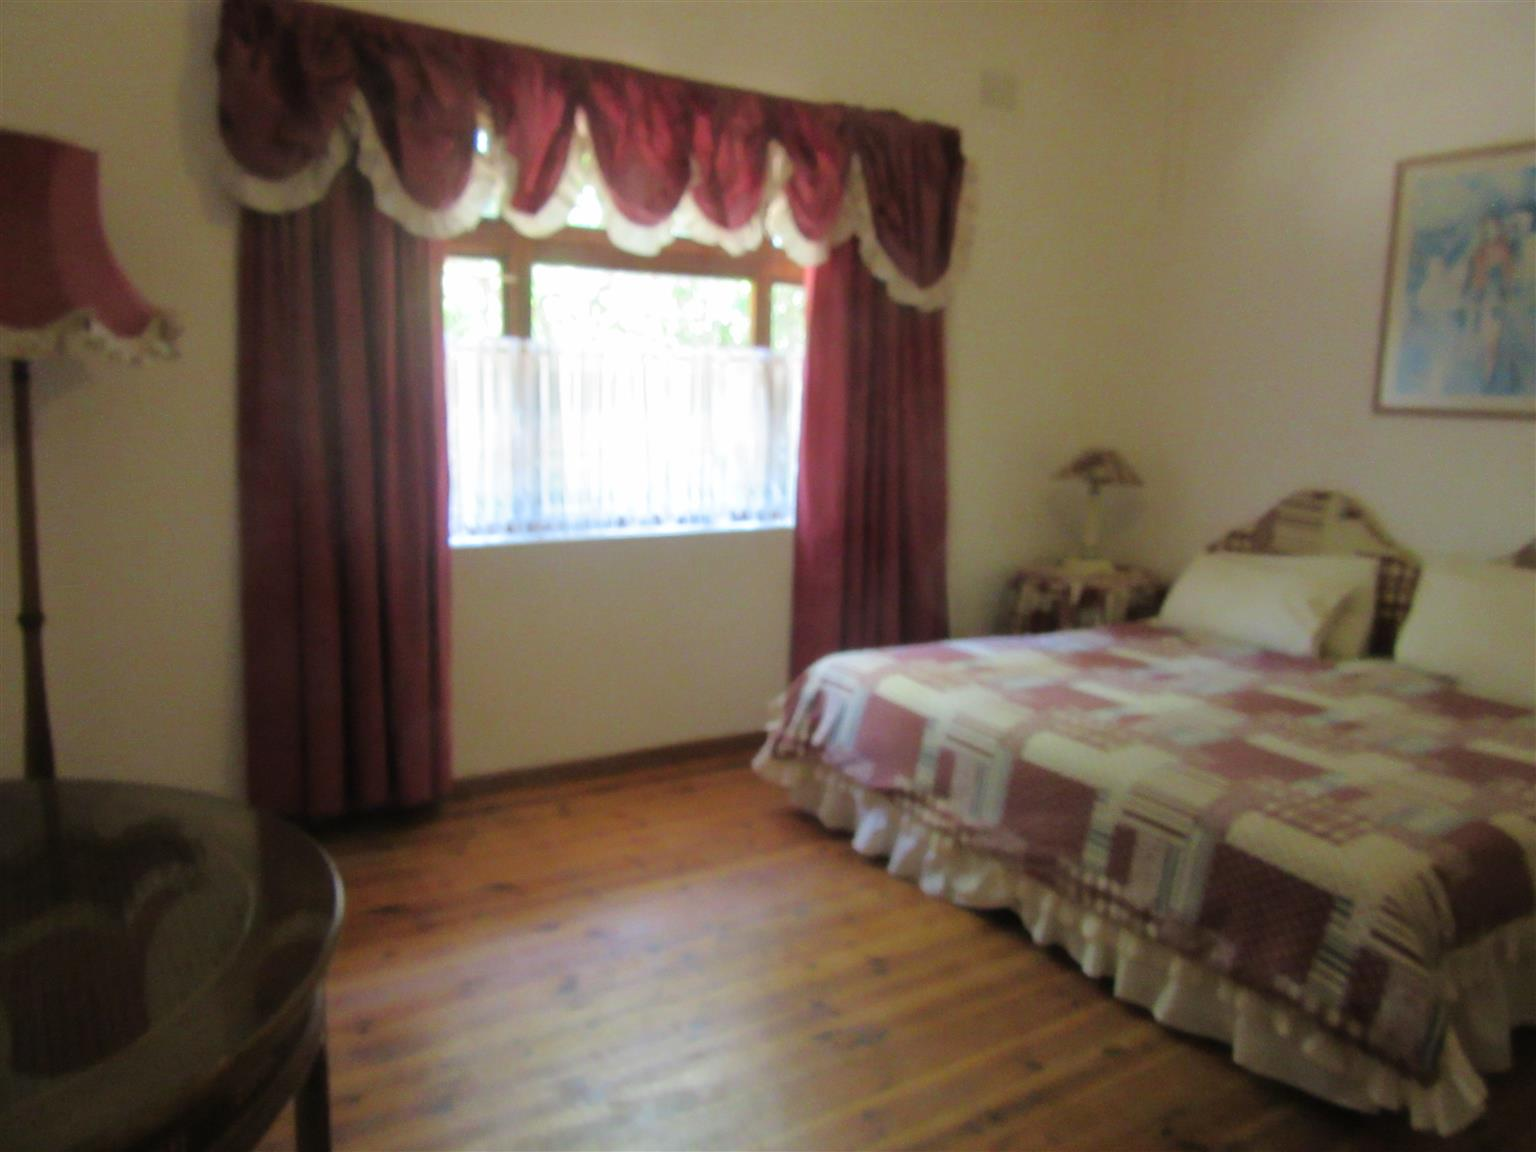 SO MUCH POTENTIAL EXCELLENT INVESTMENT HOUSE + COTTAGE INCOME A 100% BOND & UTILITIES TWENI R990,000